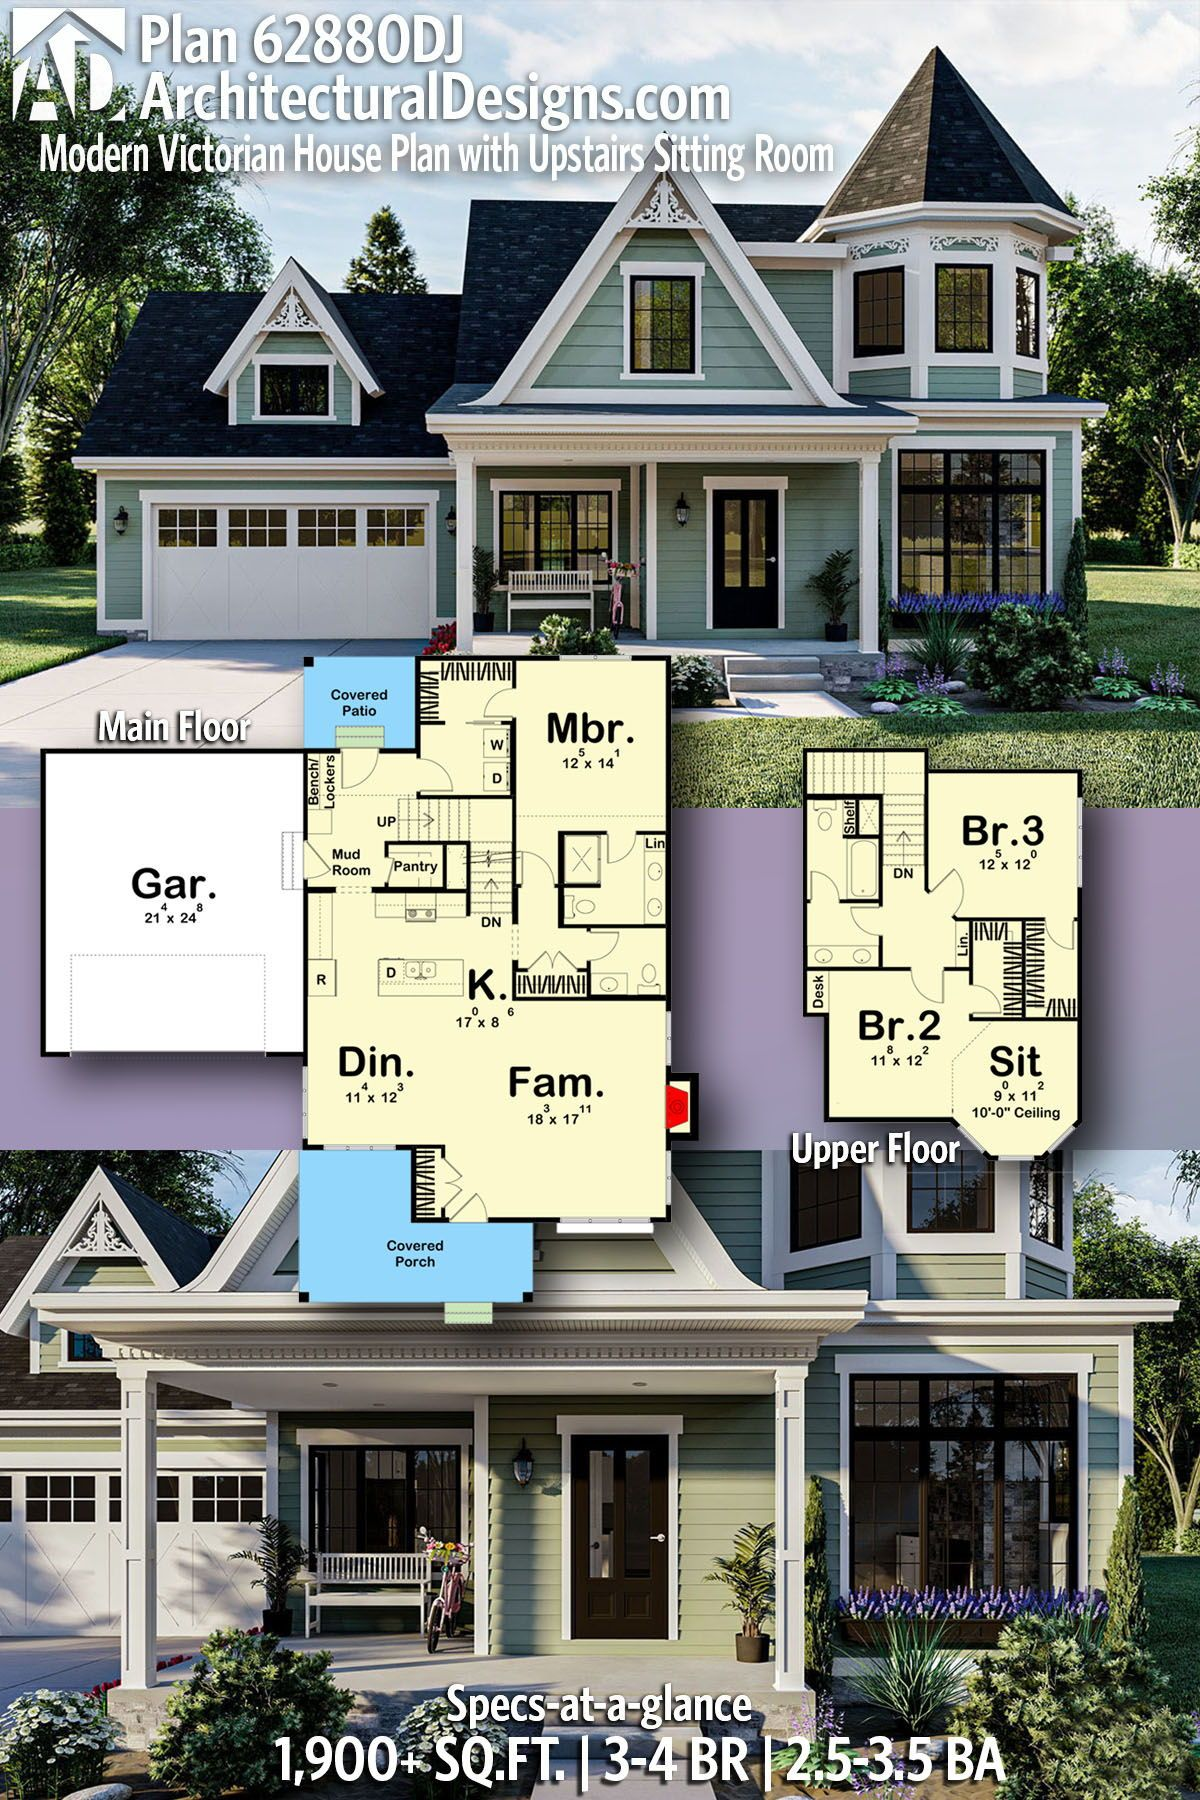 Modern Victorian 3 Bed or 4 Bed House Plan DJ with Upstairs Sitting Room